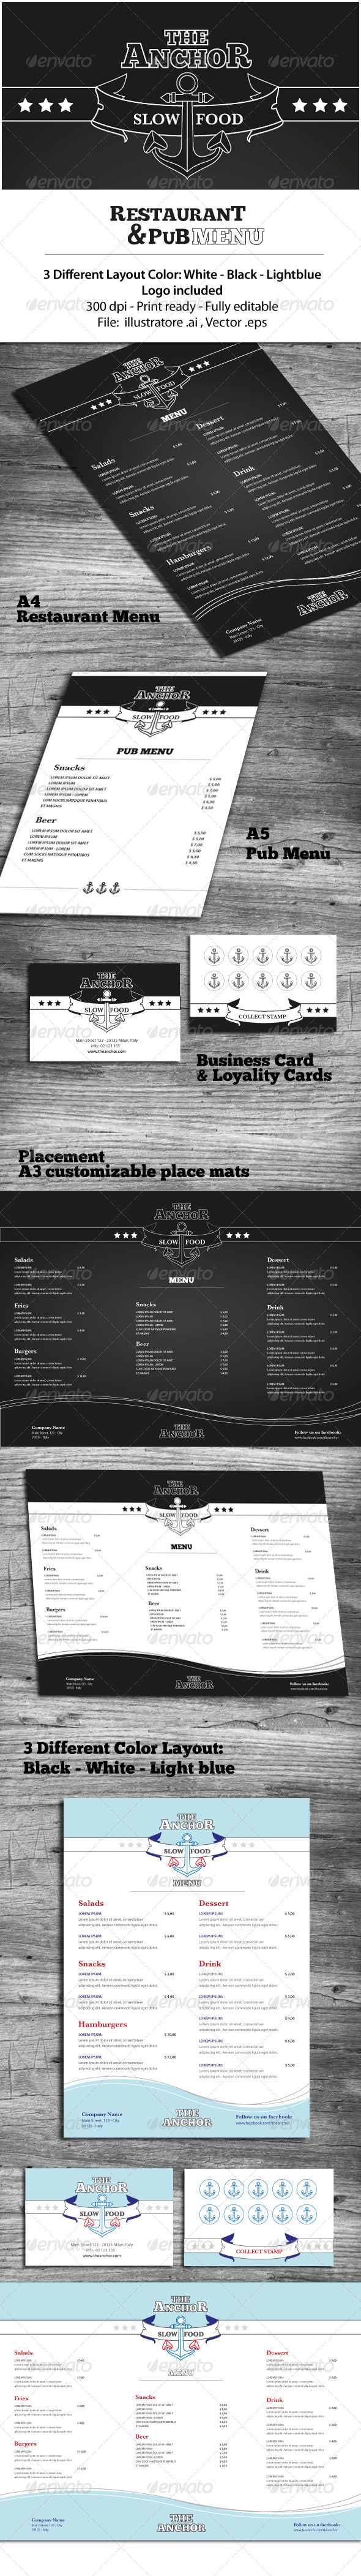 GraphicRiver Restaurant & Pub Menu 6030779